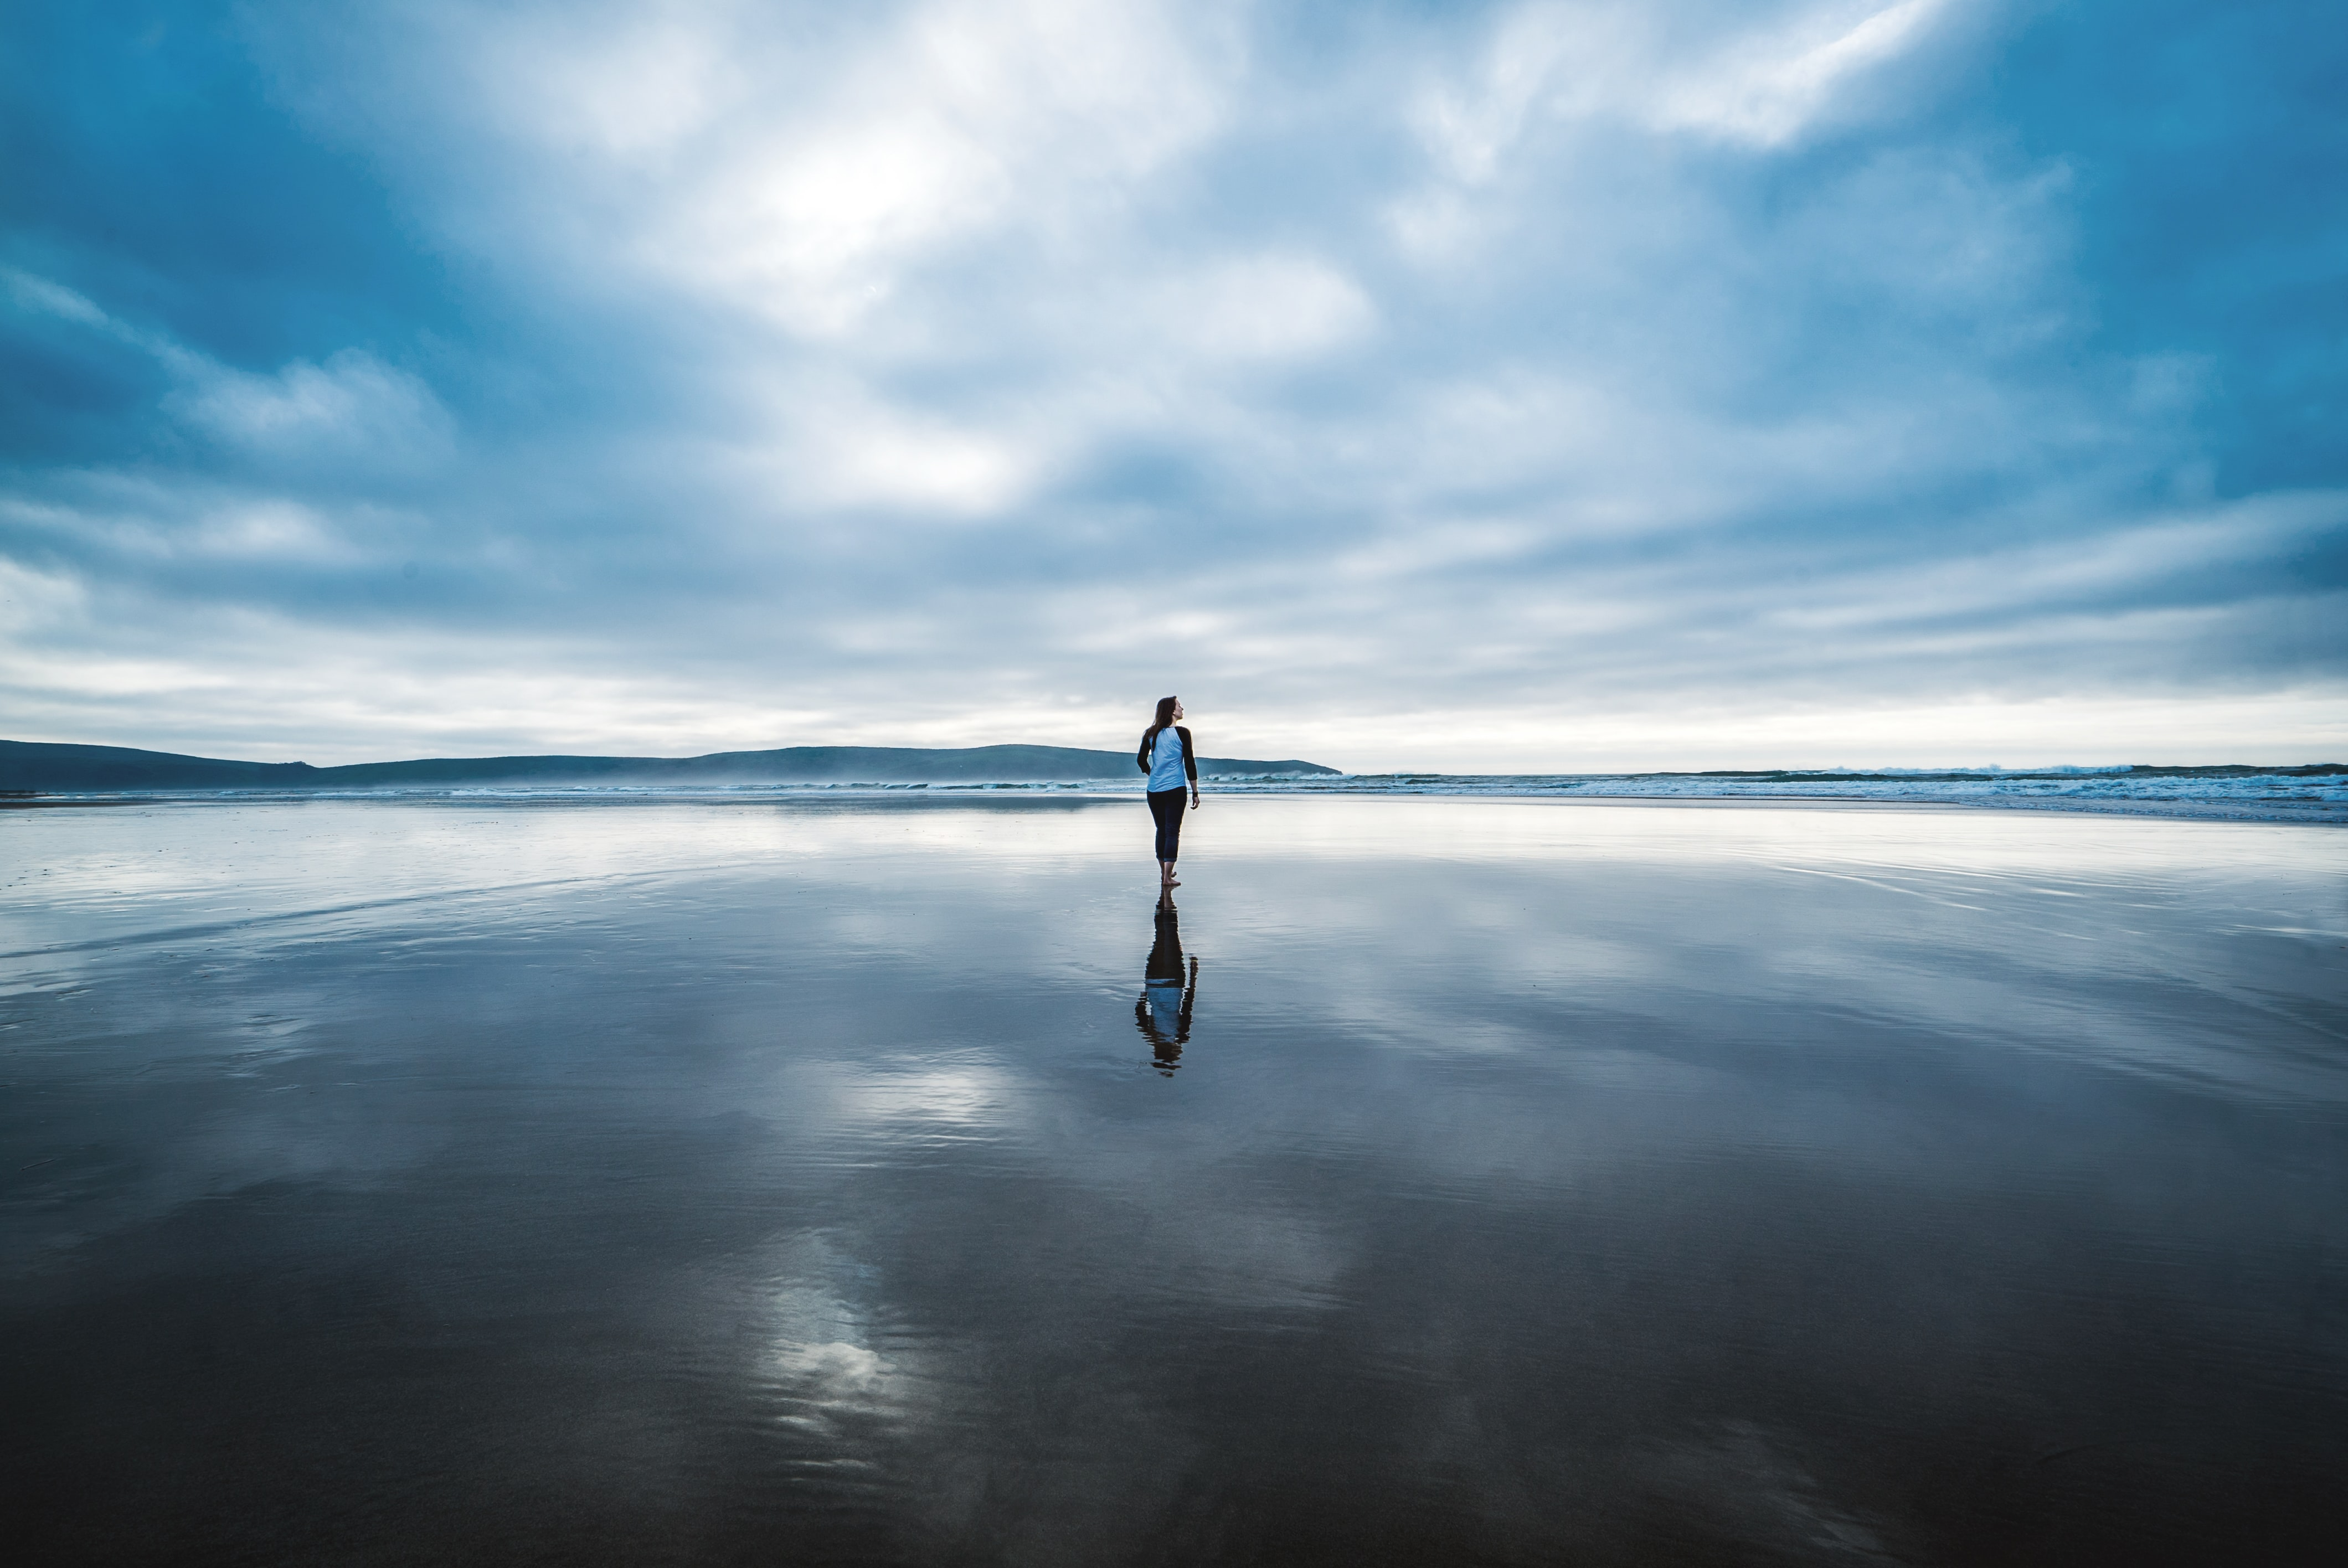 photography of person on body of water during daytime